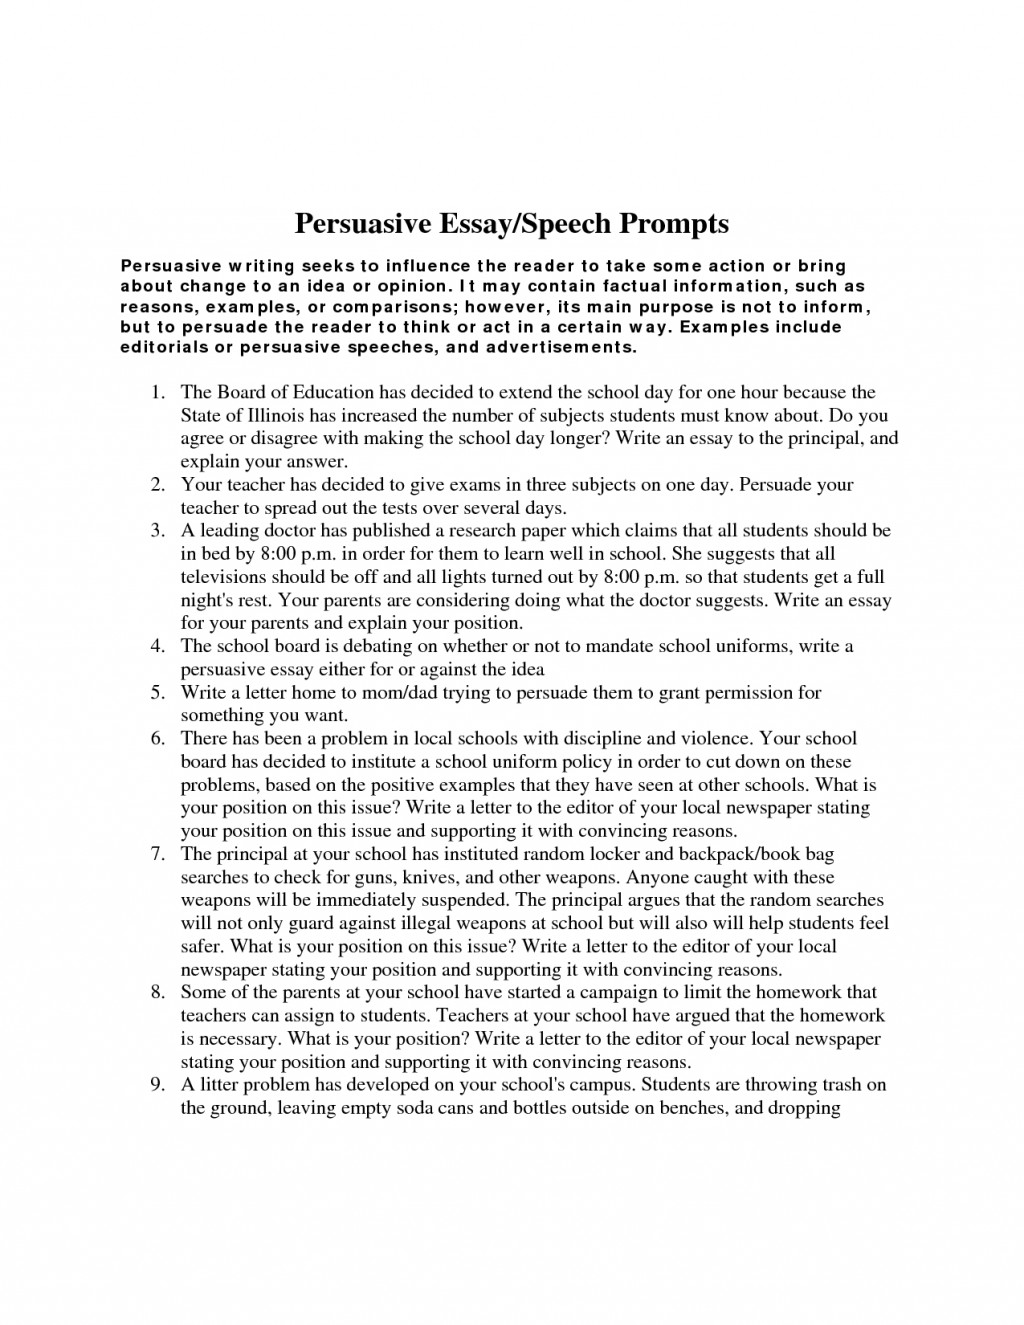 012 Essay Example Persuasive Prompts Informative Remarkable Topics Prompt 4th Grade For High School Expository College Students Large